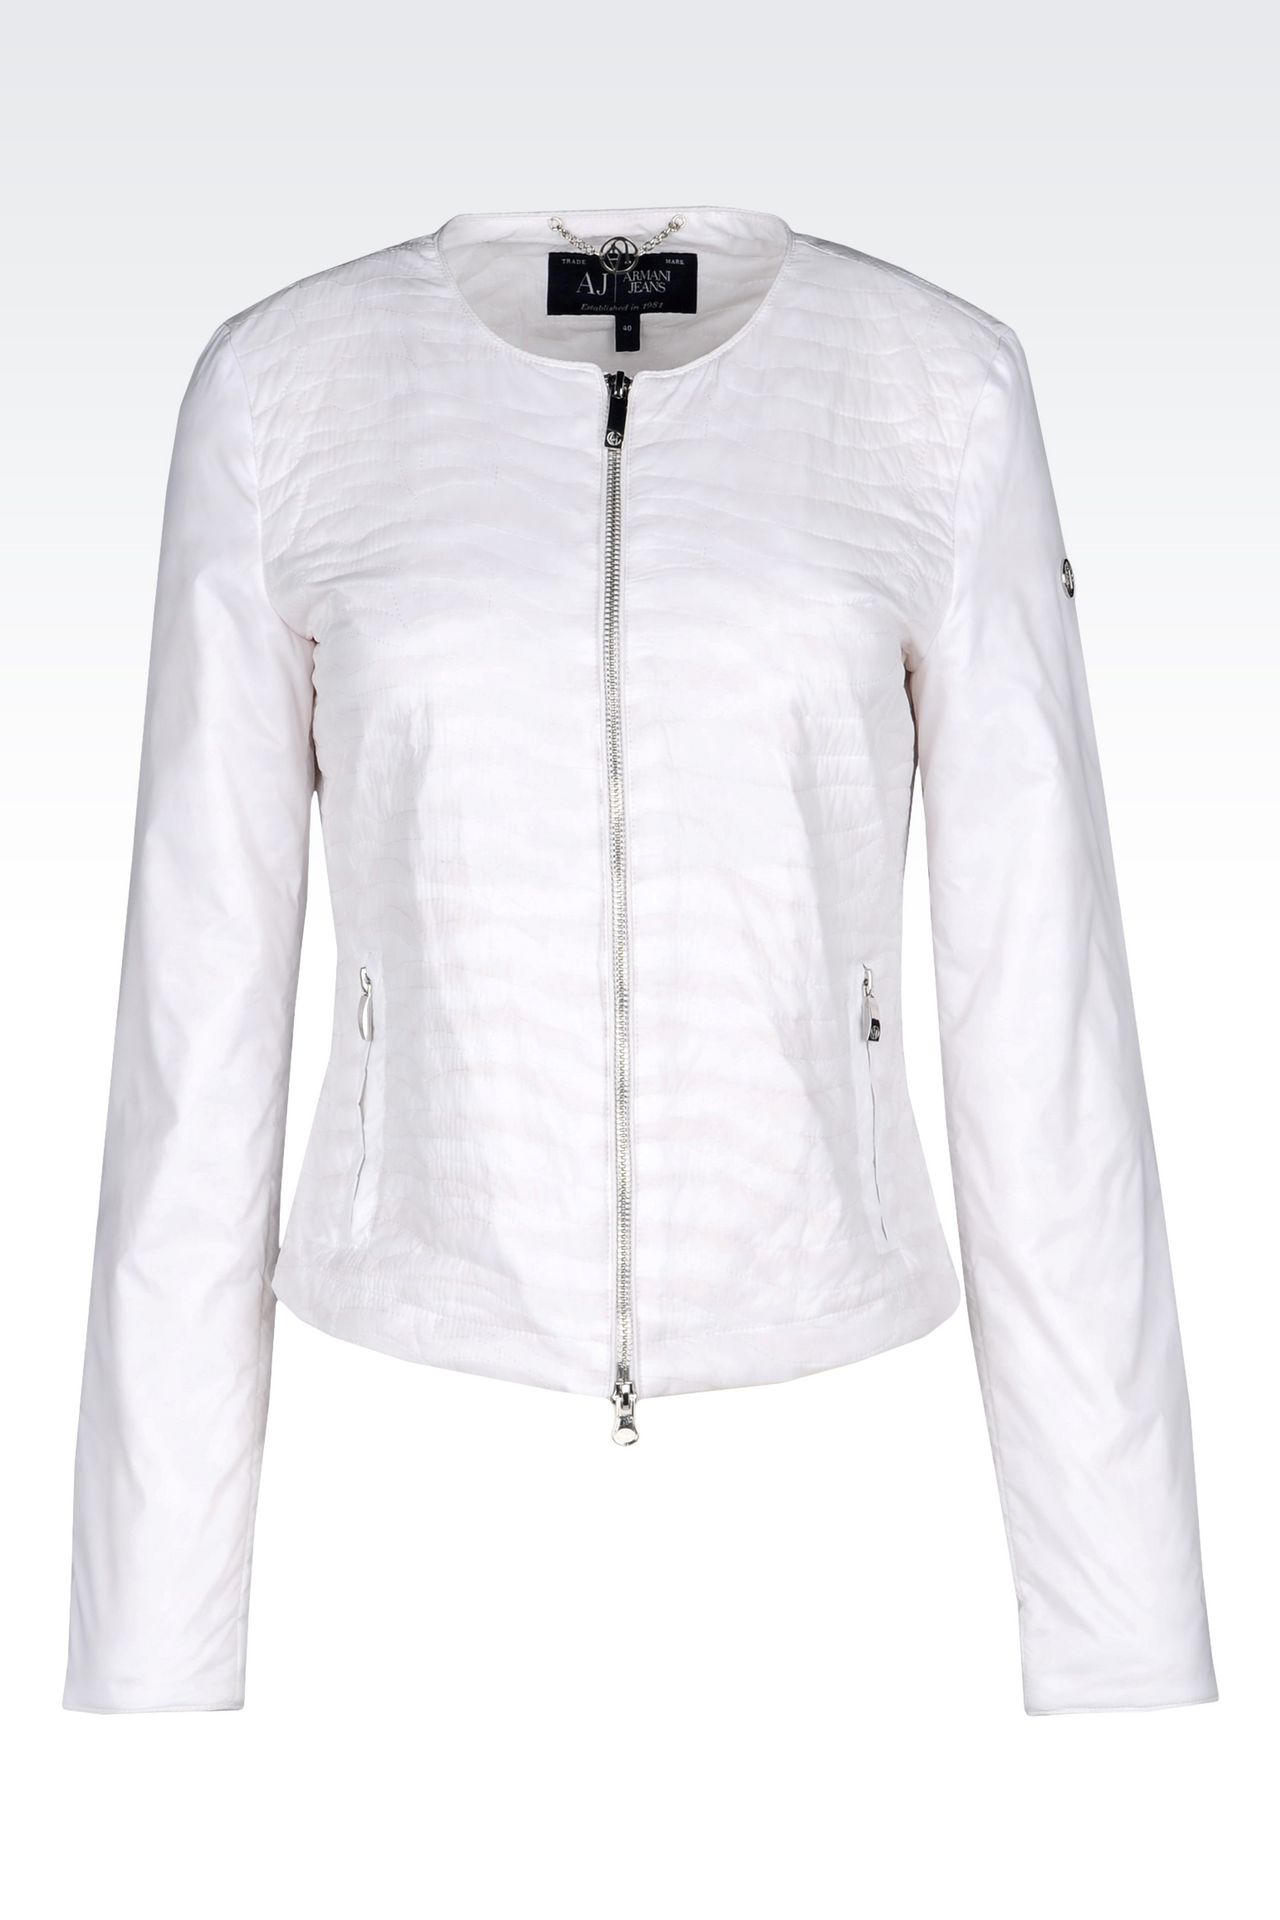 CREW NECK BLOUSON IN QUILTED NYLON: Dinner jackets Women by Armani - 0